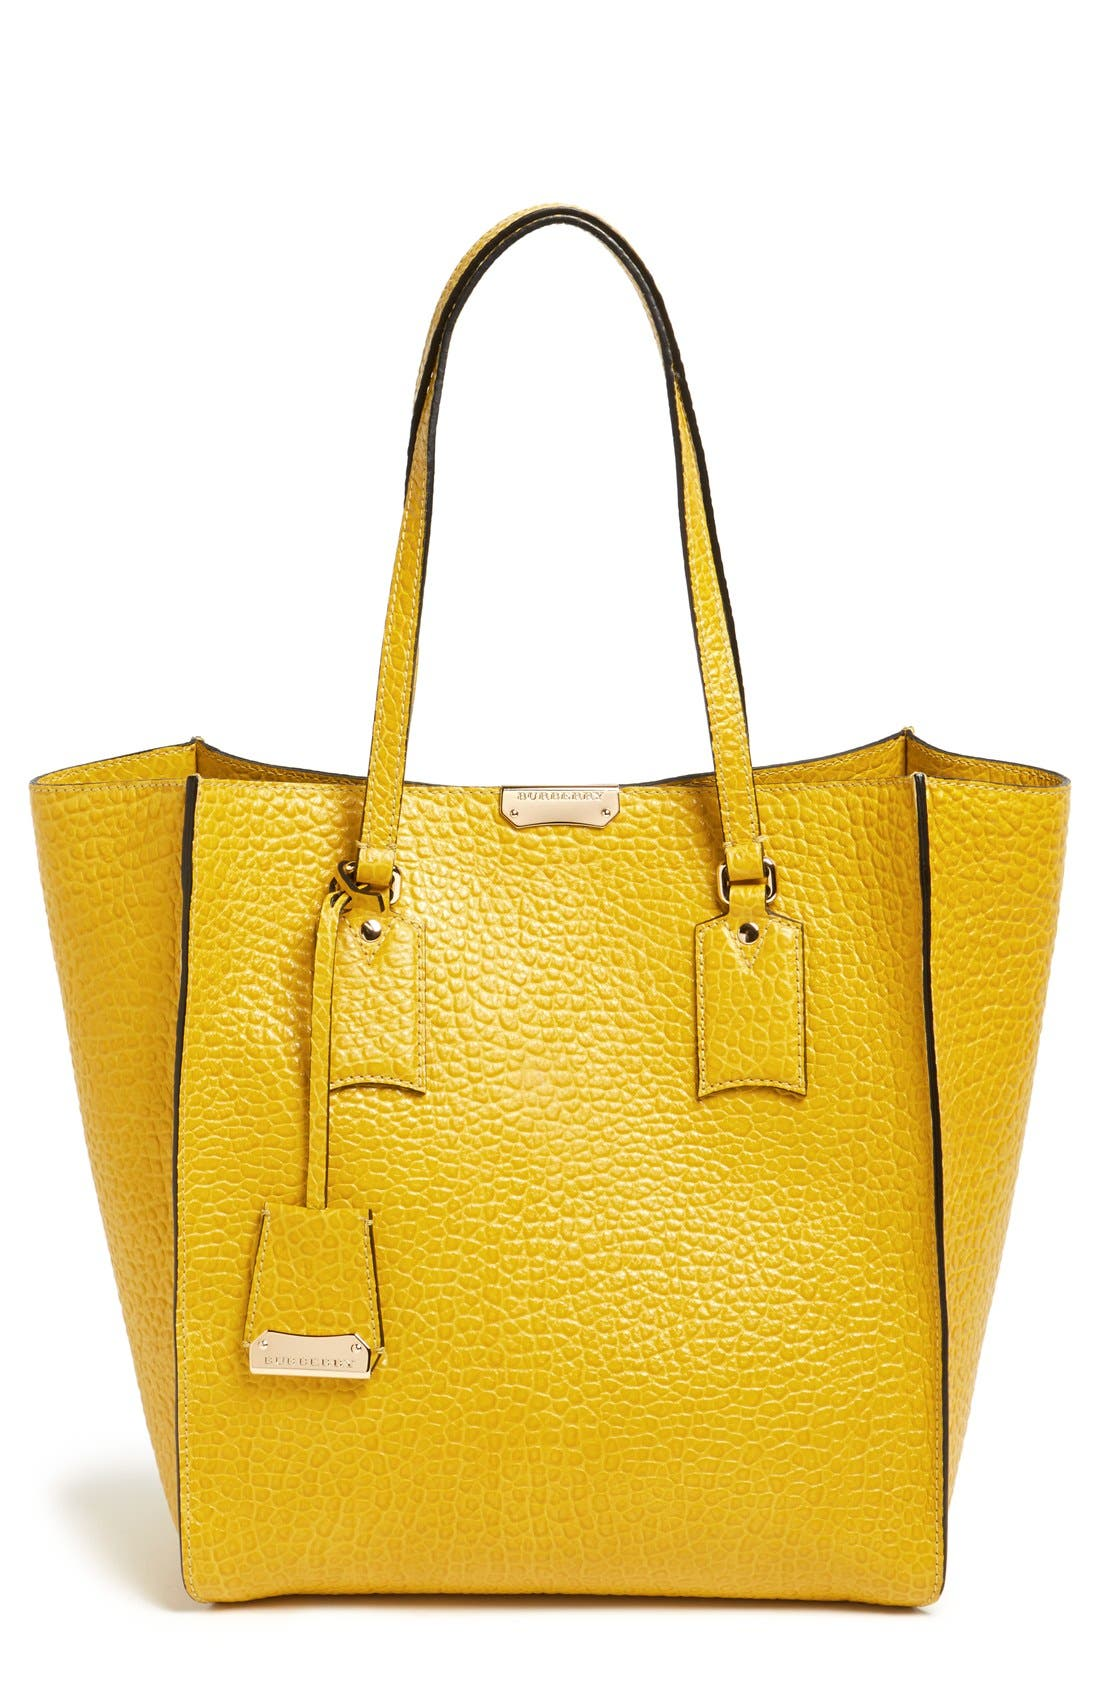 Main Image - Burberry 'Medium Woodbury' Leather Tote